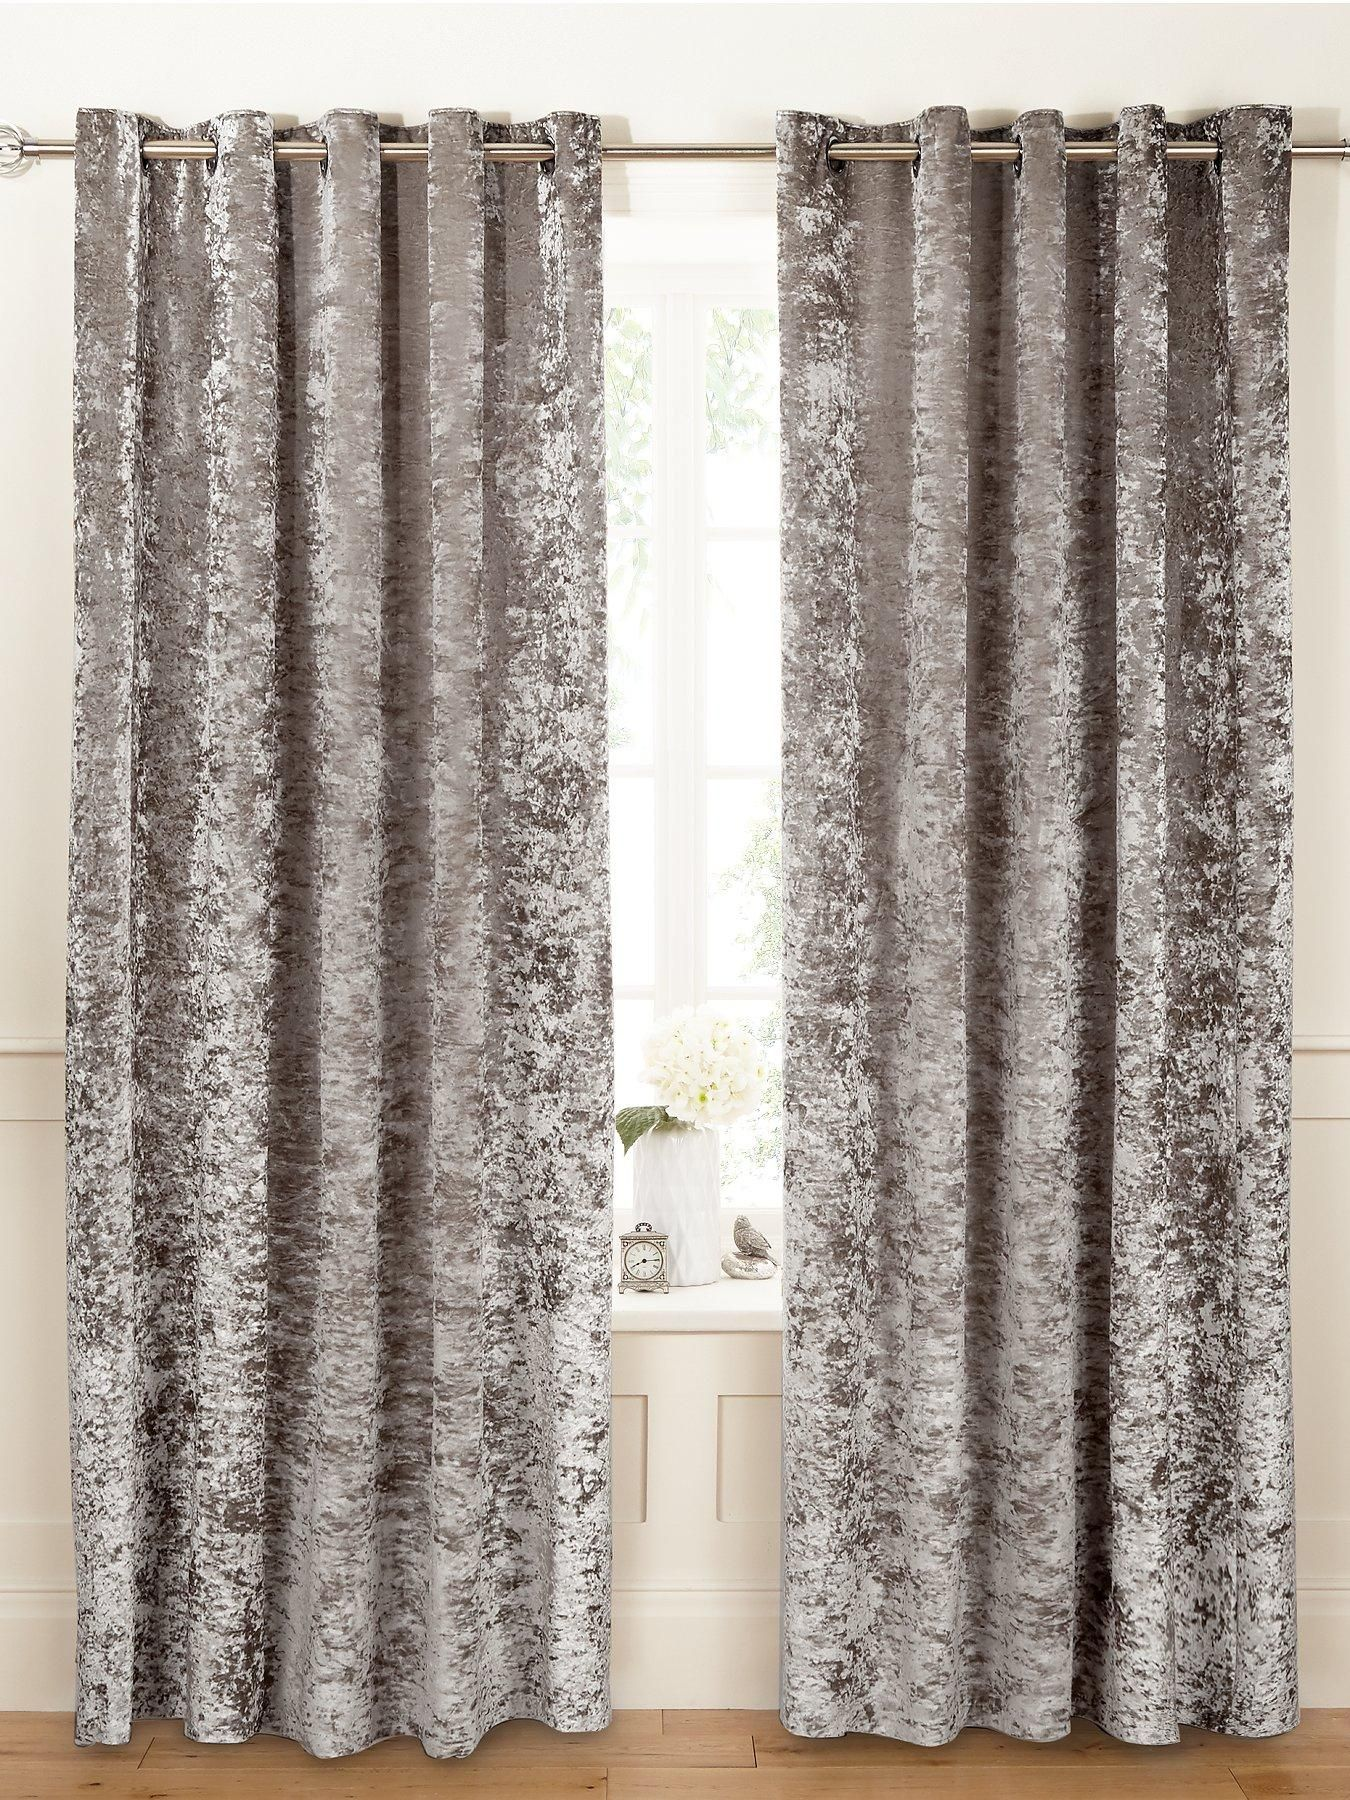 Luxe Collection Luxury Crushed Velvet Lined Eyelet Curtains In 2019 The Spot Velvet Bedroom